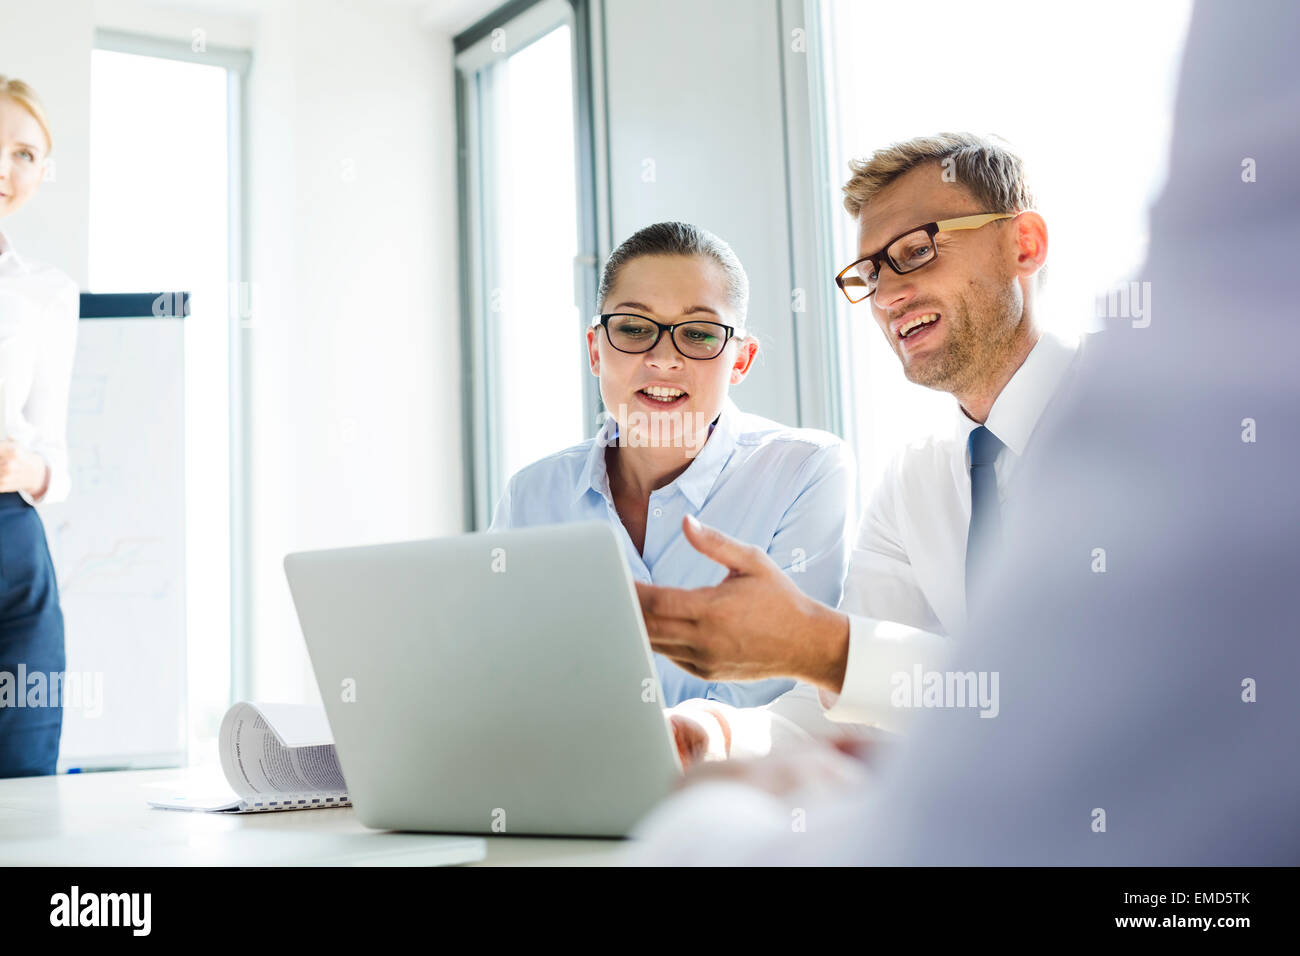 Business people in workshop developing new ideas - Stock Image